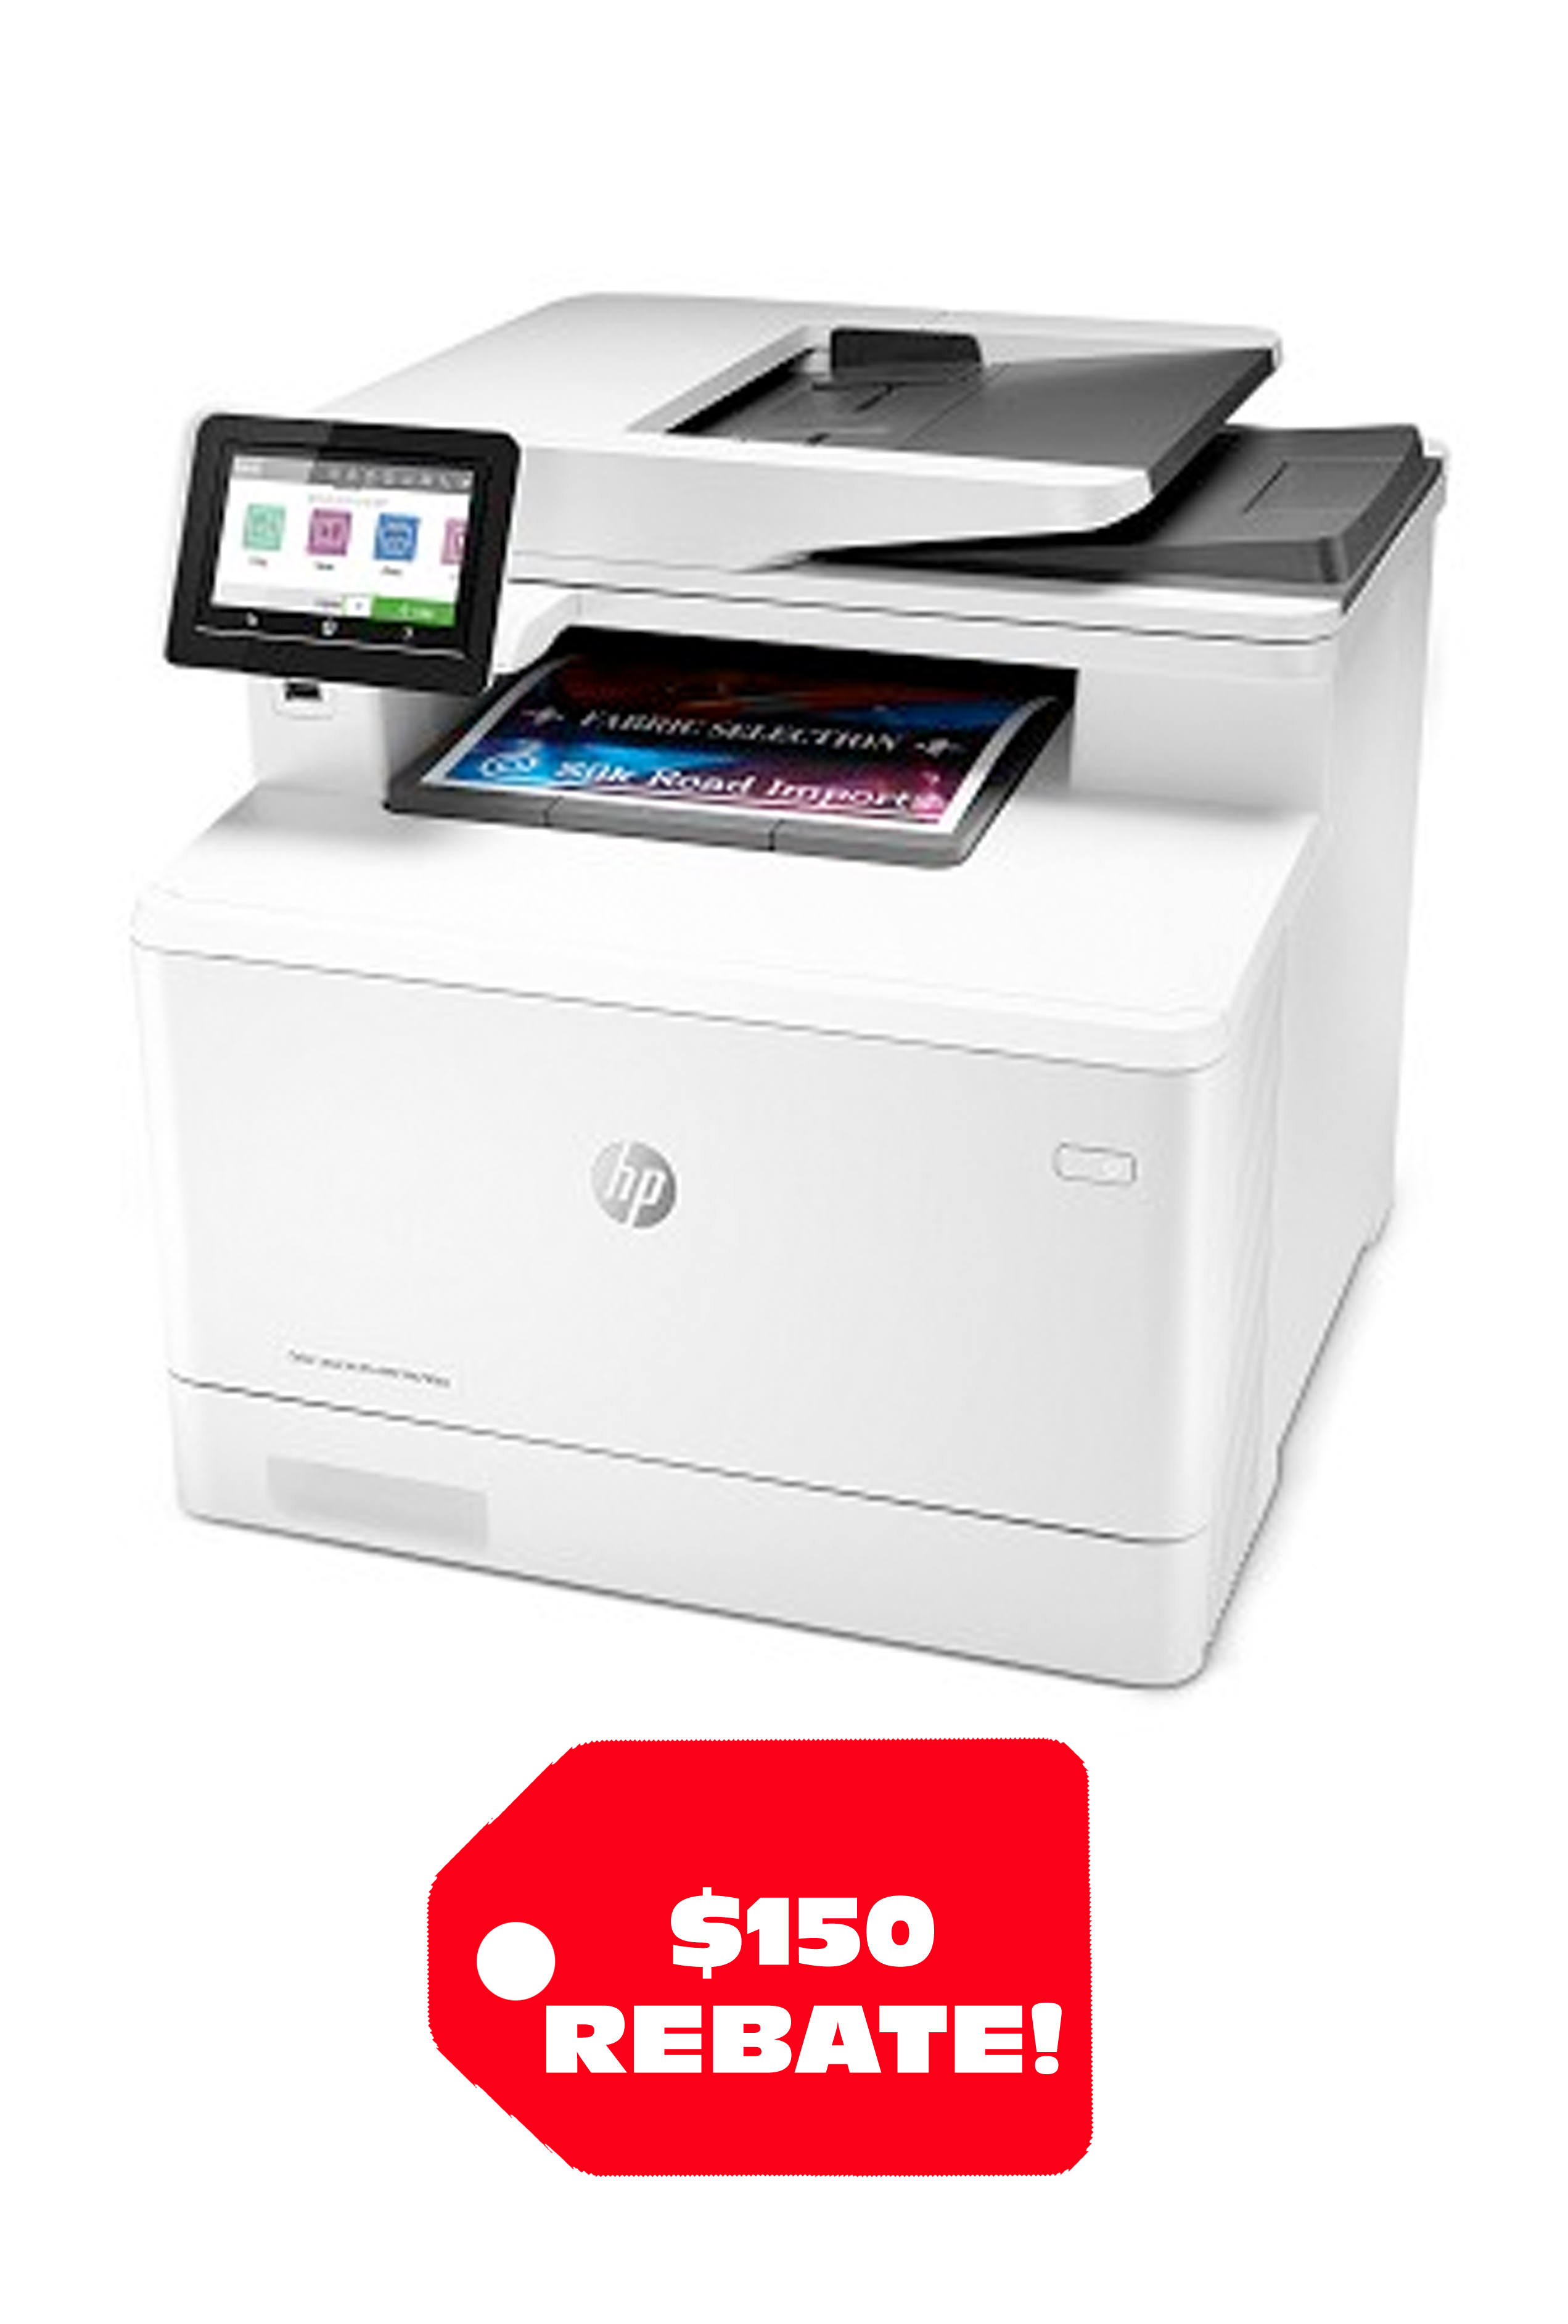 HP Color LaserJet Pro MFP M479fdn (28/27 ppm)